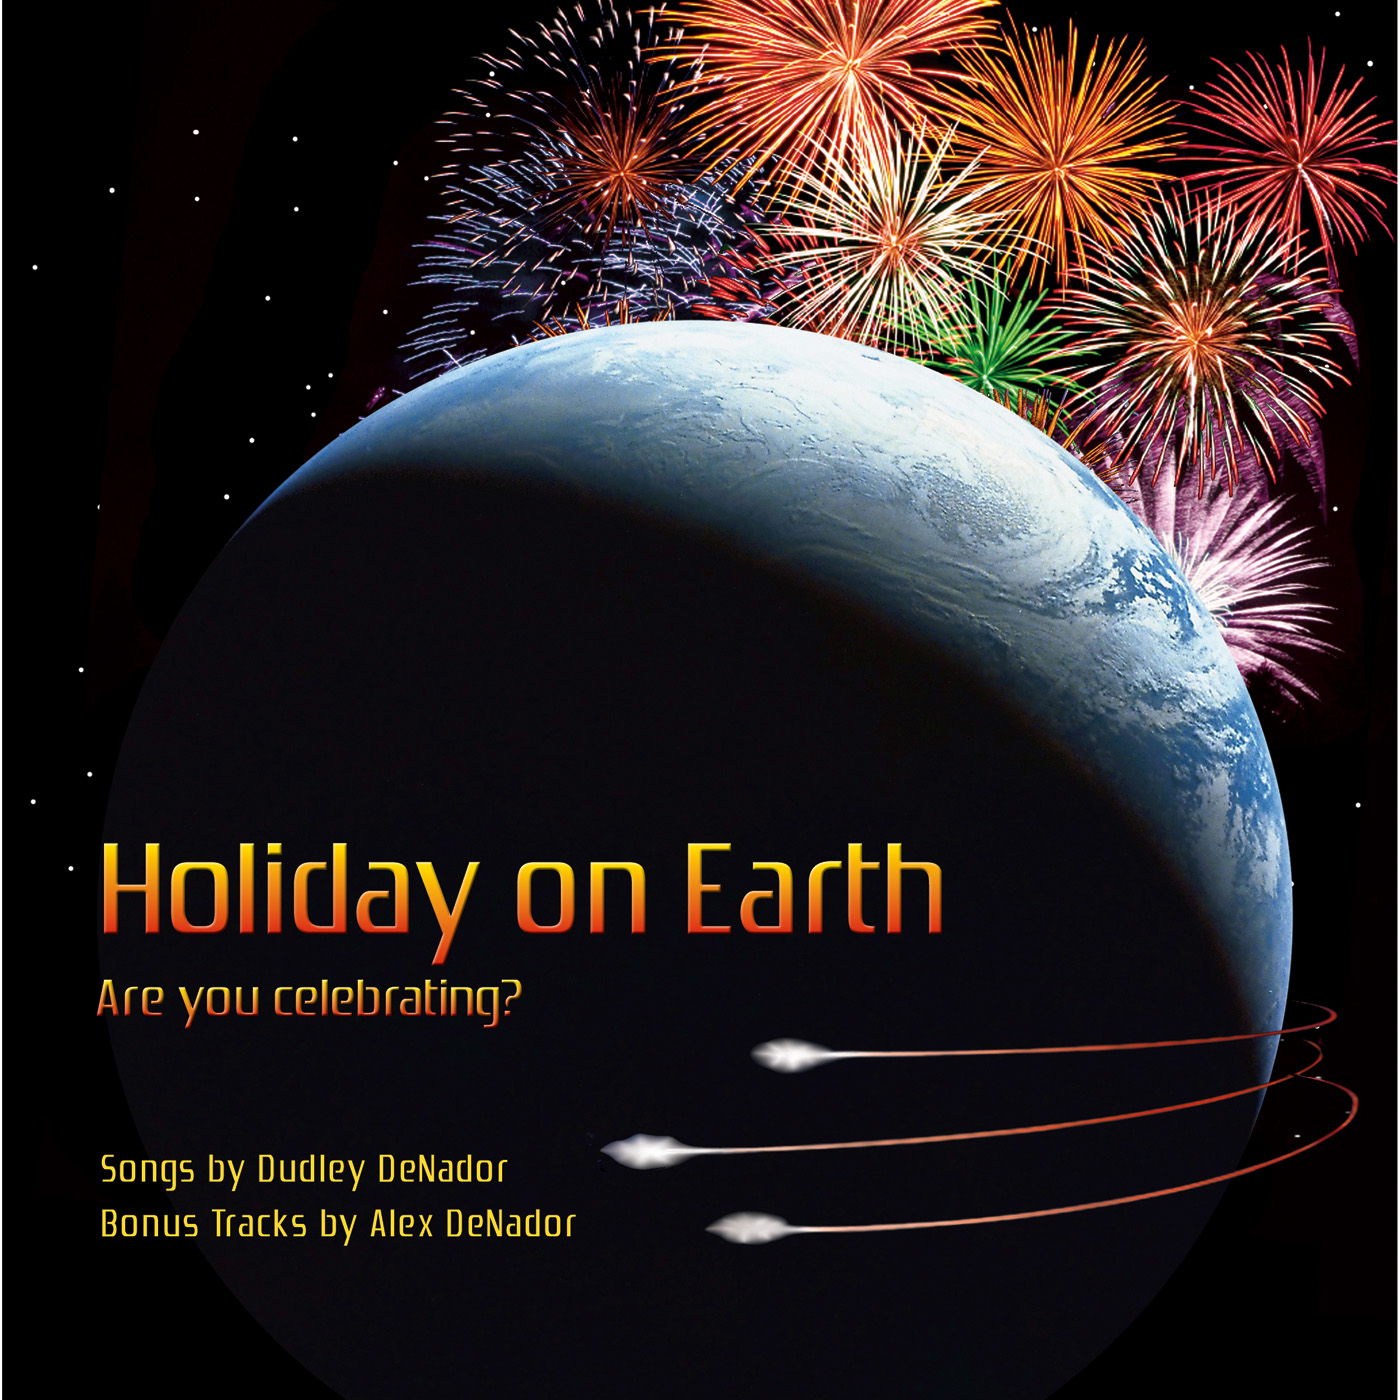 Holiday on Earth - The DeNadors